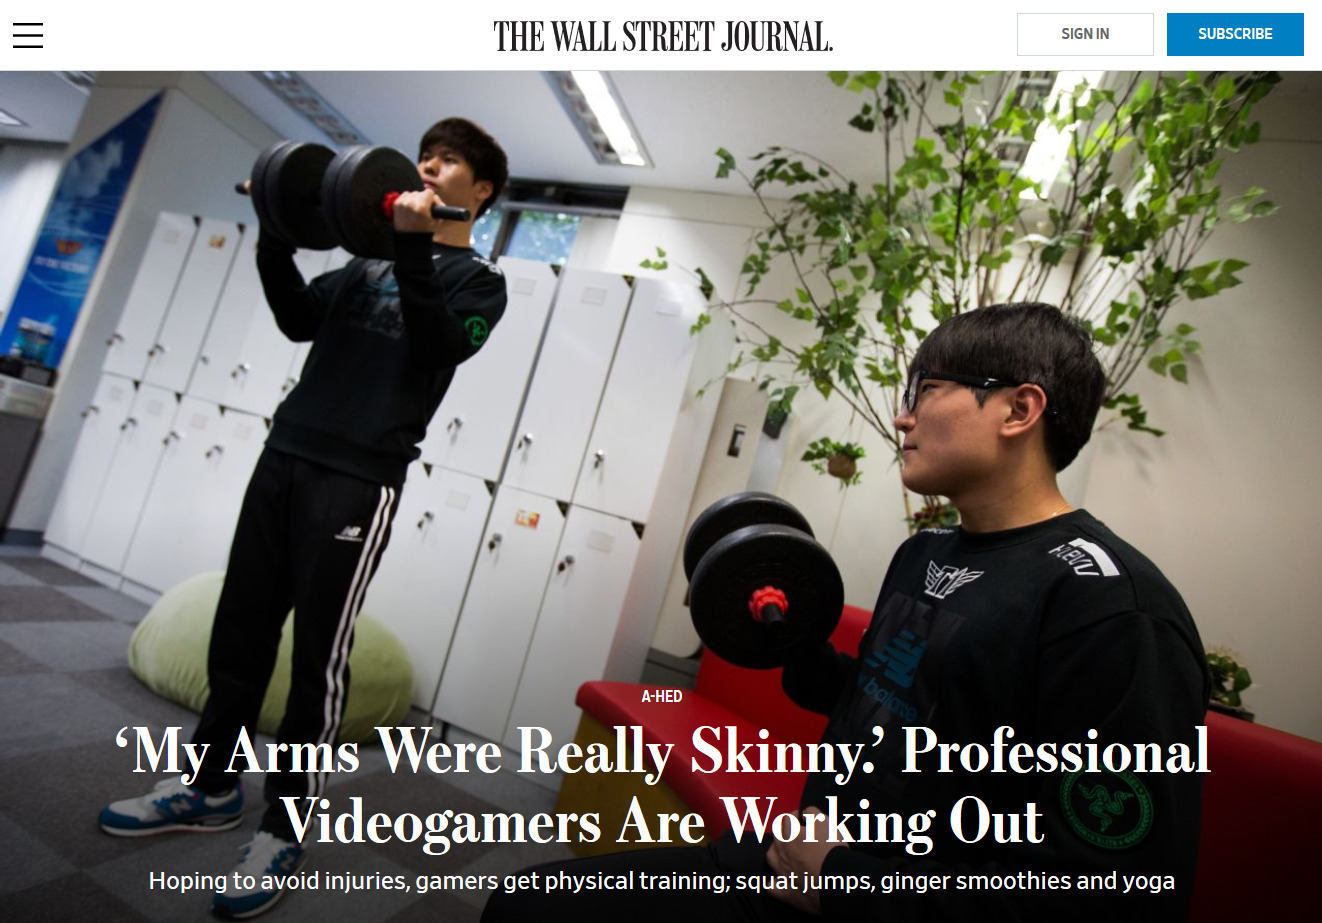 WSJ Screen Shot.jpg